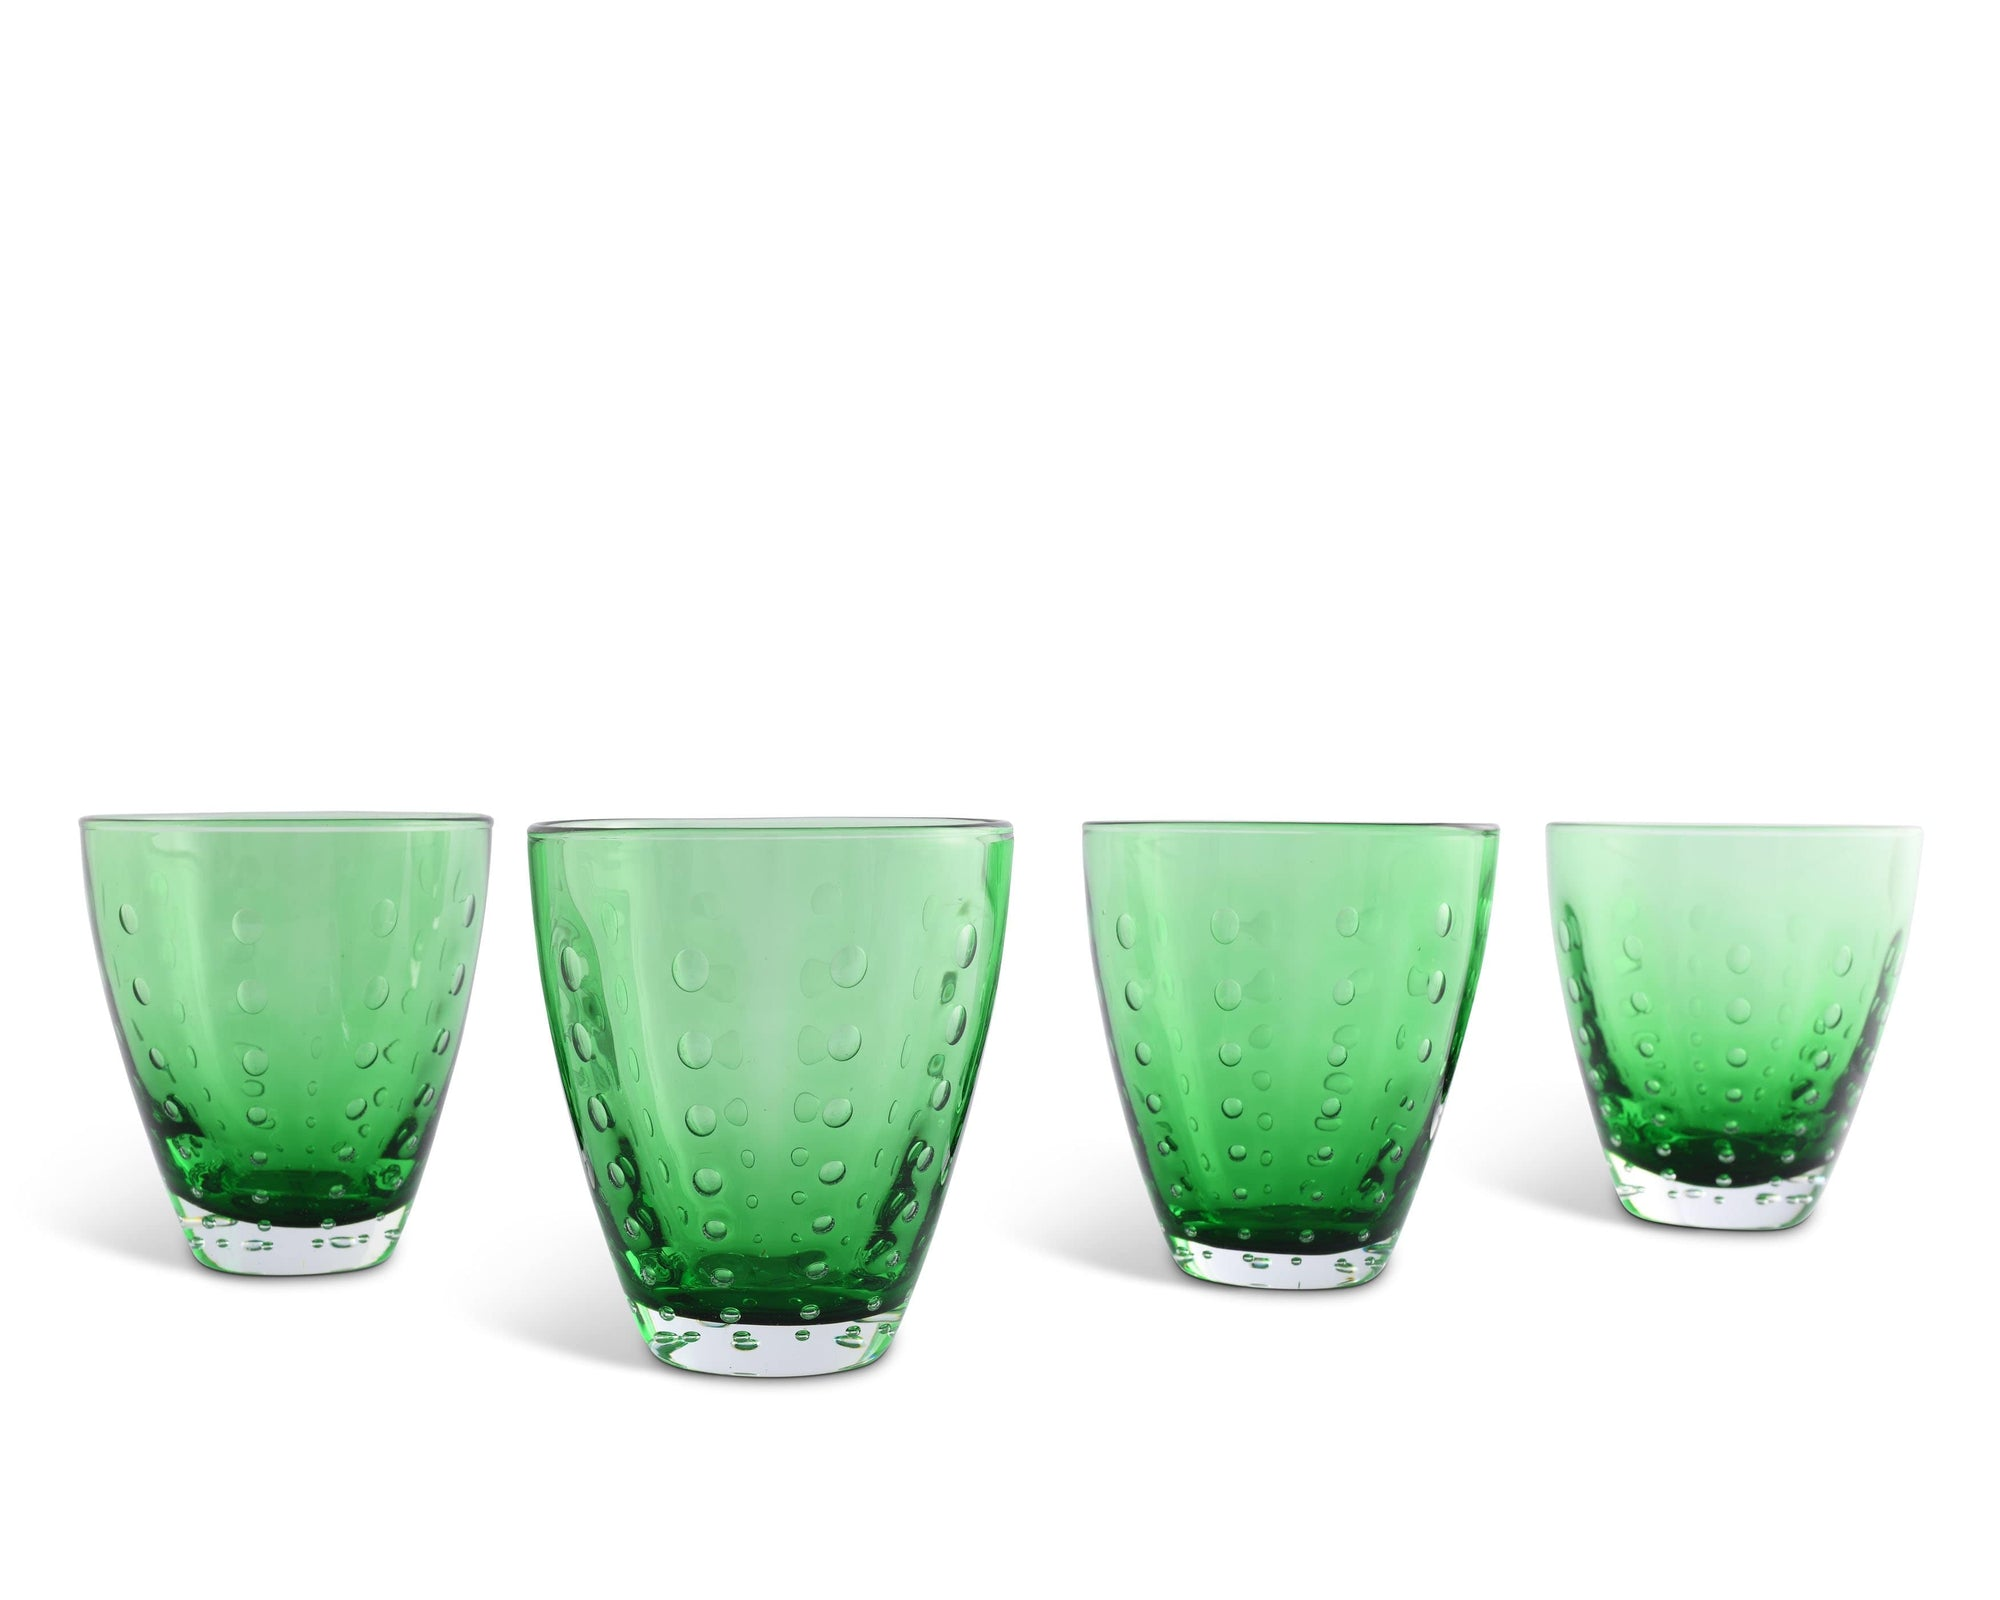 Vagabond House Hand Blown Glassware On the Rocks Glass - Forest Dew-Green - Set of 4